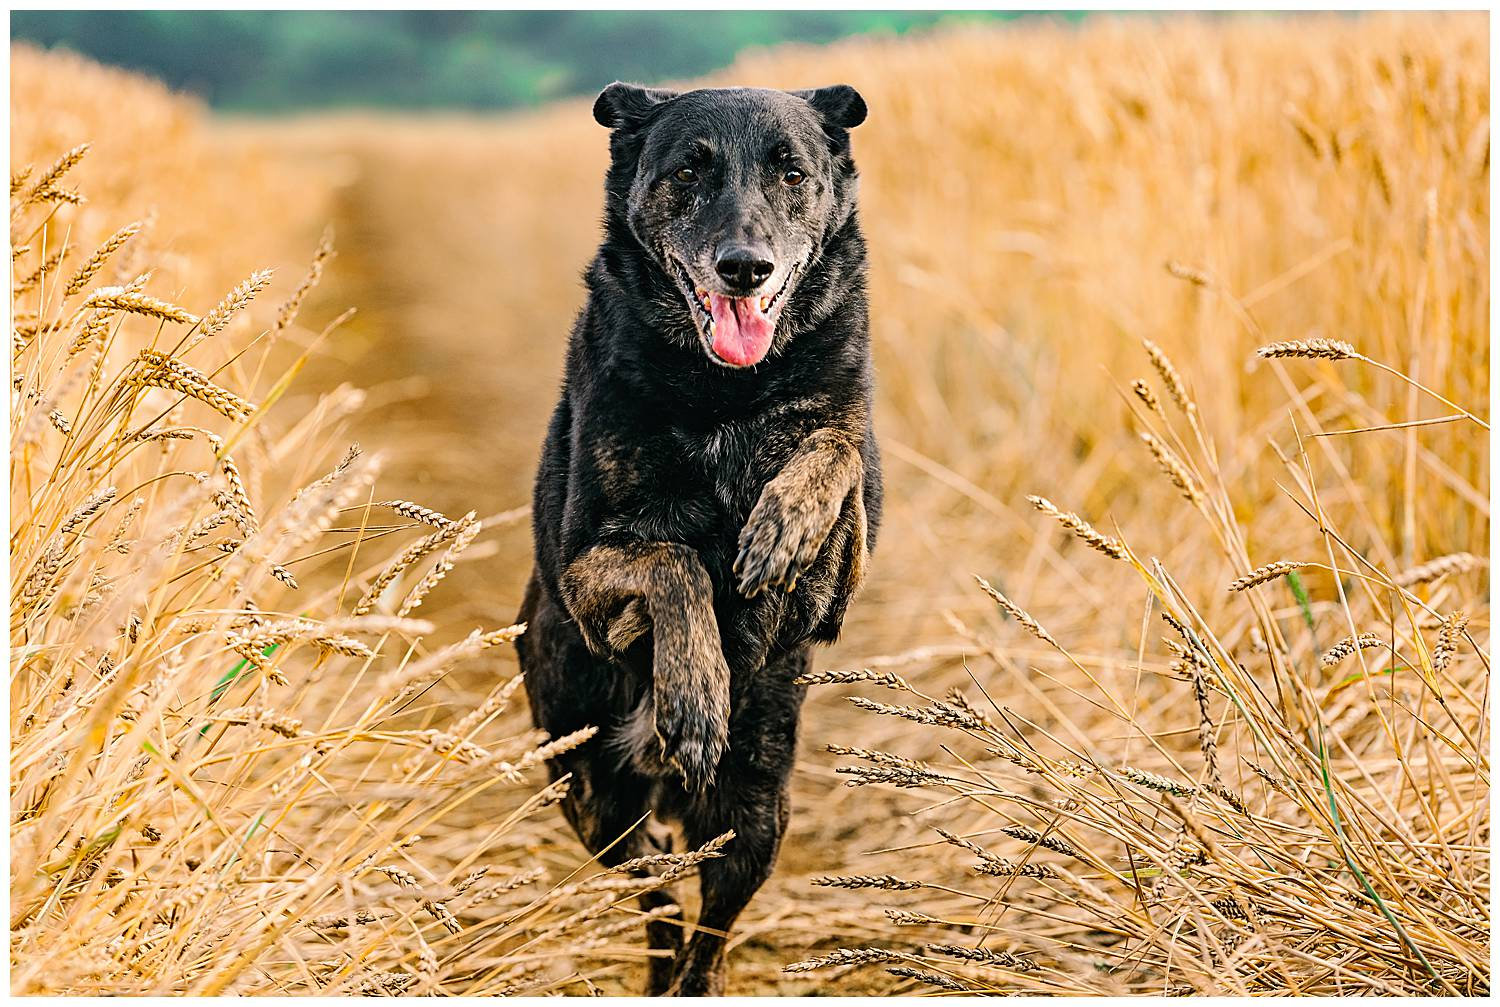 Old dog running towards the camera through a field of wheat